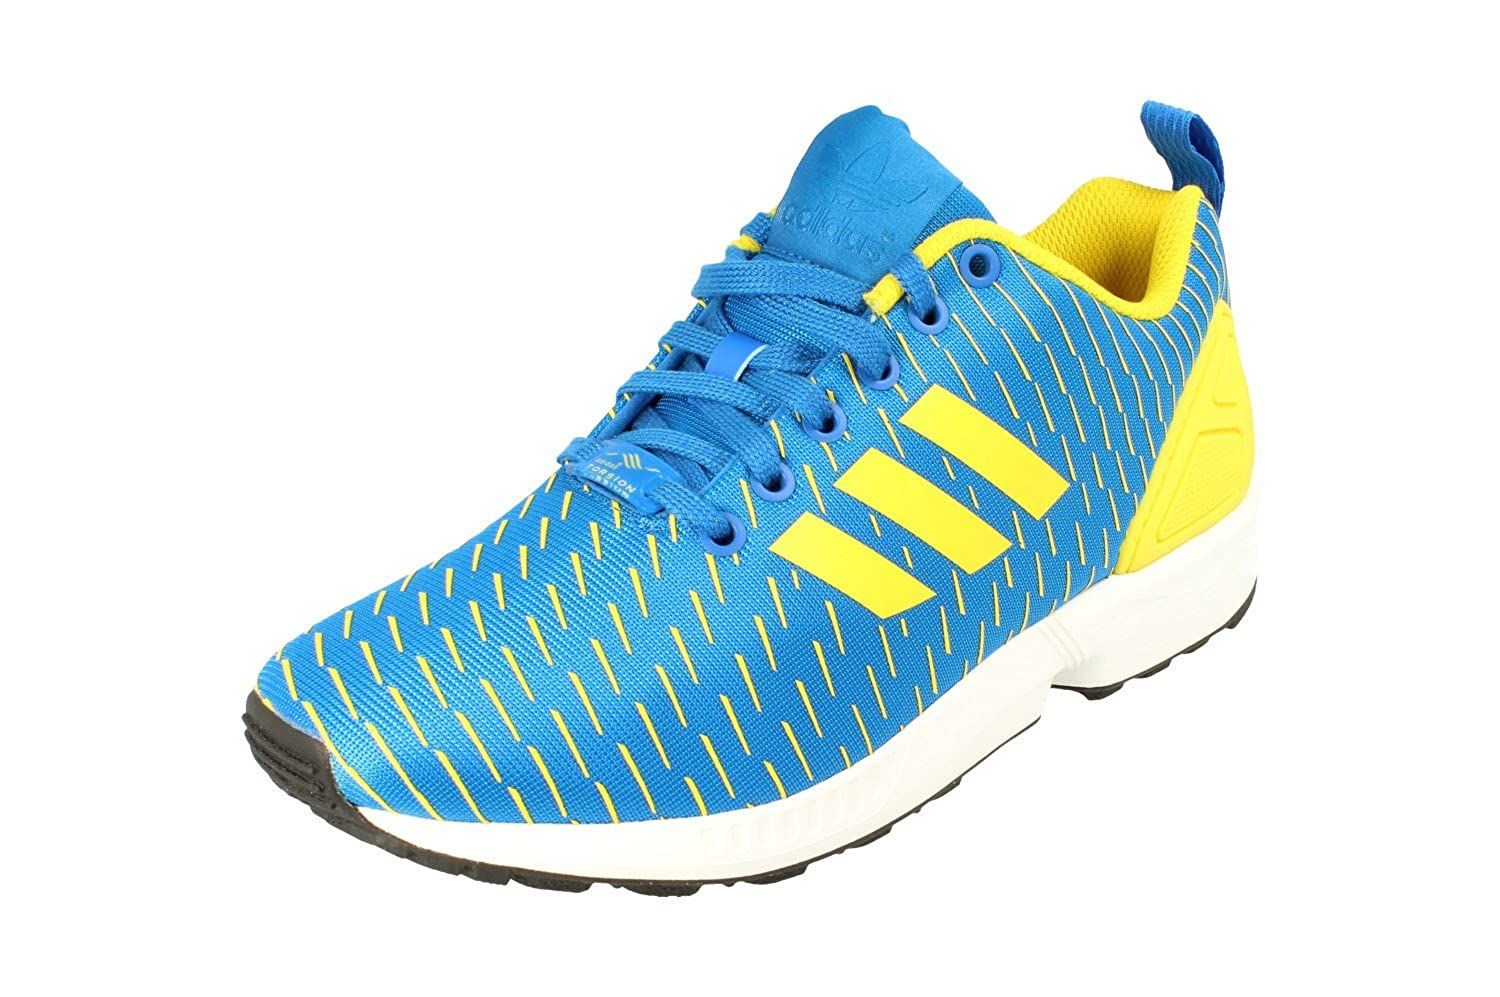 f3aa1be83 Adidas Originals ZX Flux Trainers Sneakers Shoes  Amazon.ca  Shoes    Handbags